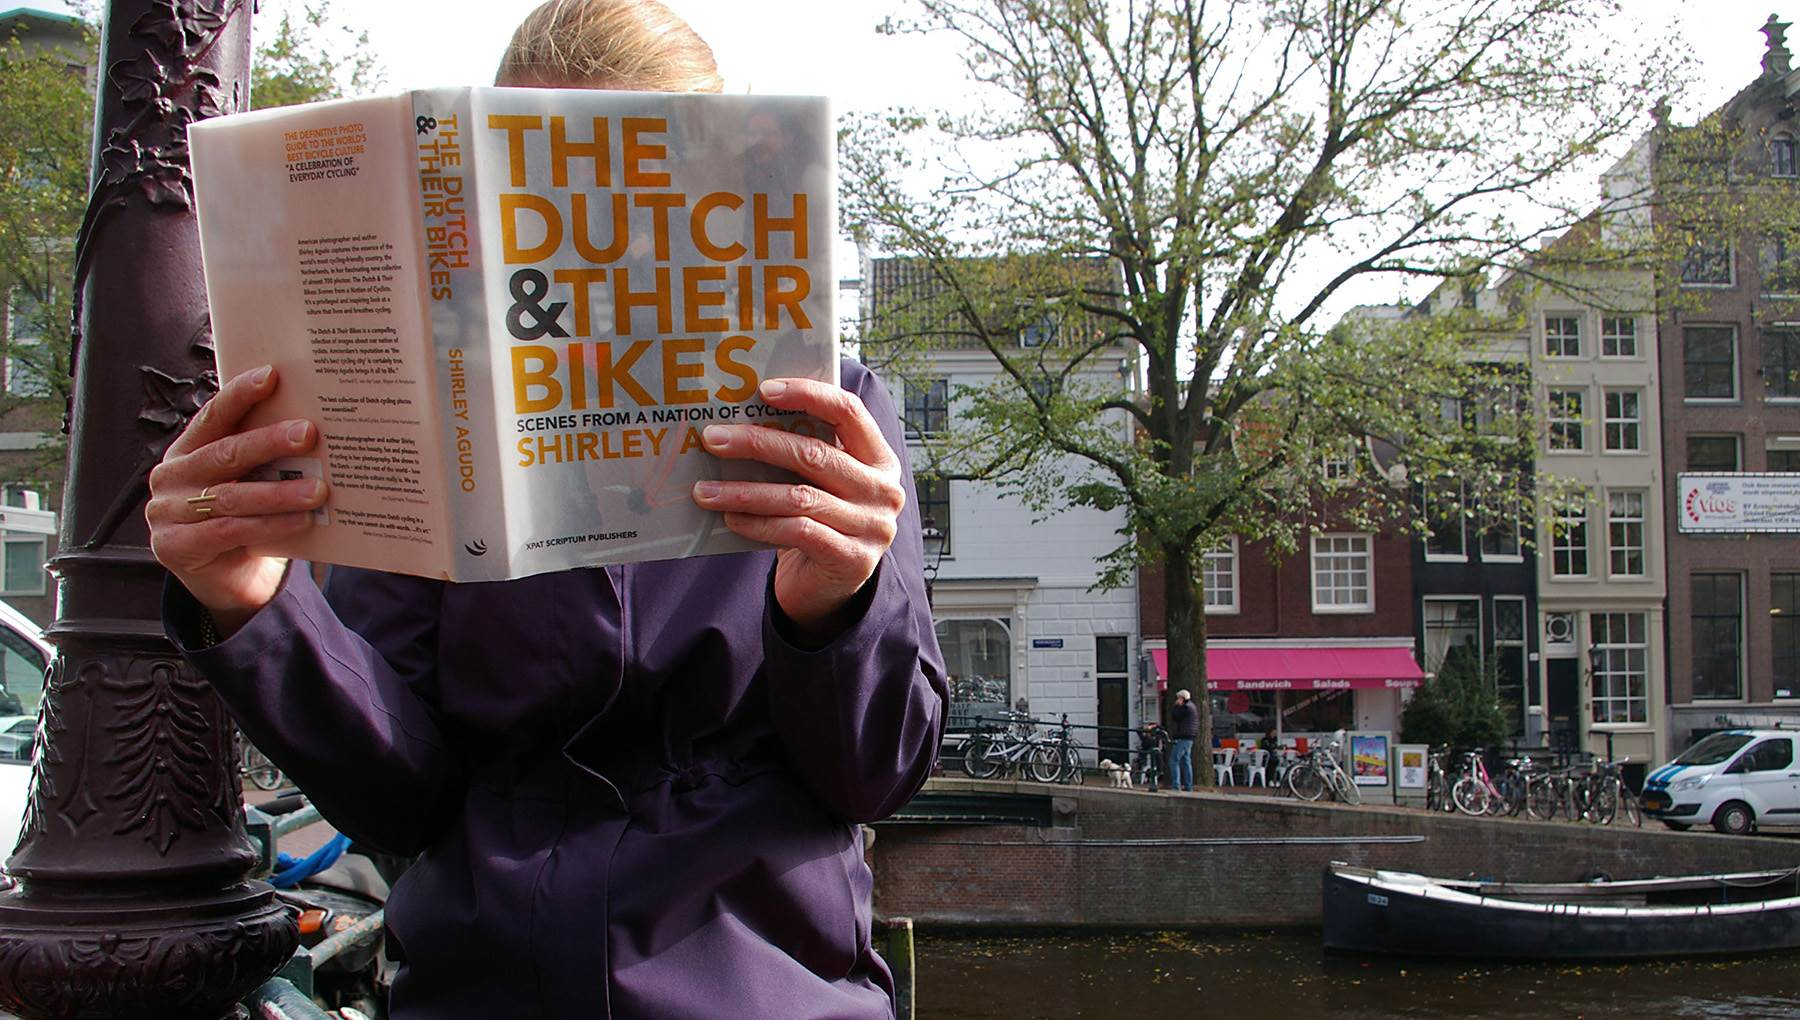 The Dutch and their bikes book Amsterdam gift